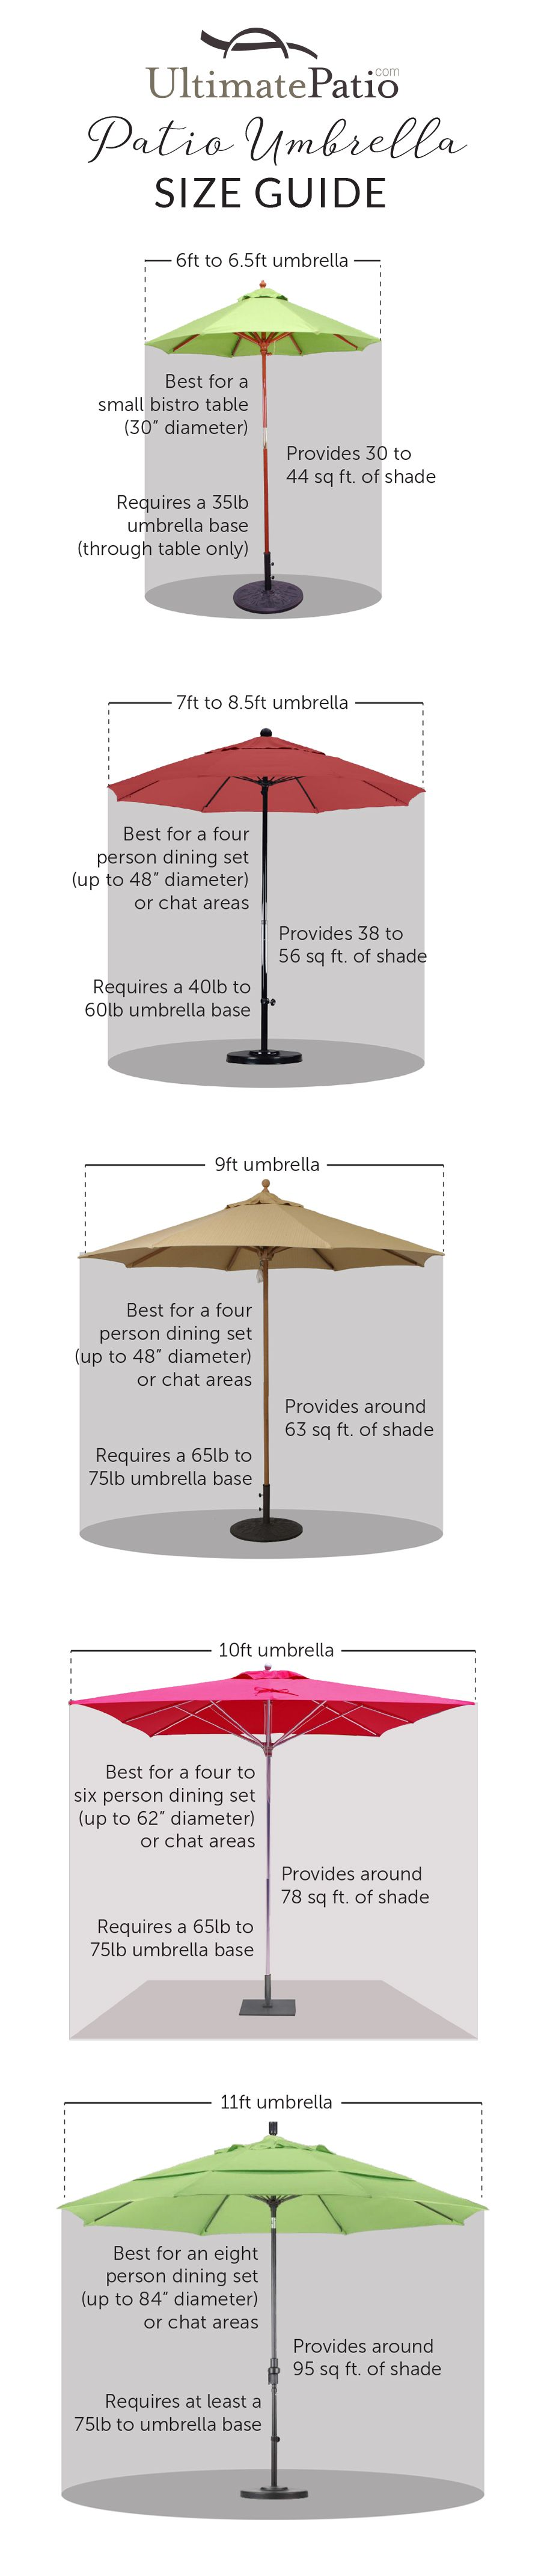 Determining The Best Size Patio Umbrella And Base For An Outdoor Space Is  An Important Part Of The Buying Process. This Guide Will Ensure The Umbrella  You ...